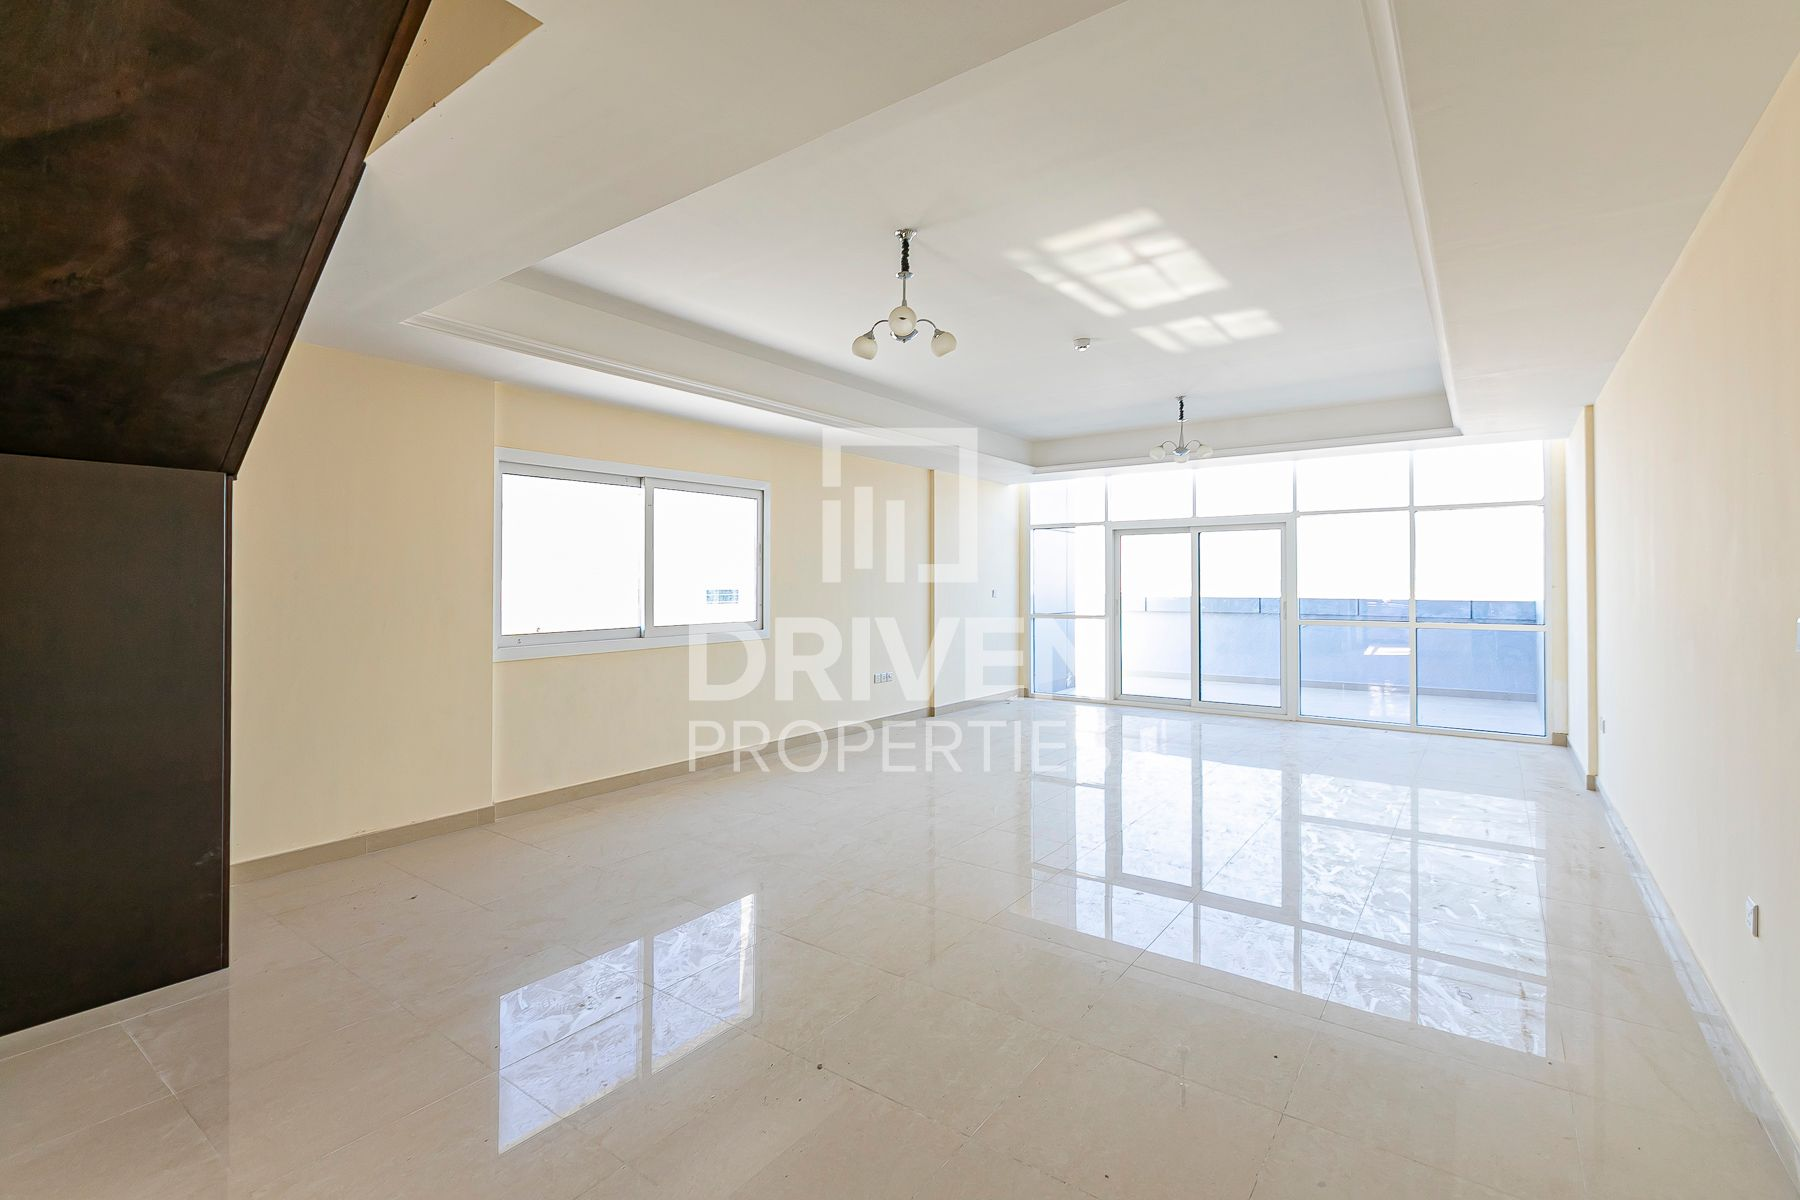 Brand New, Duplex 2 Bed Apartment For Rent